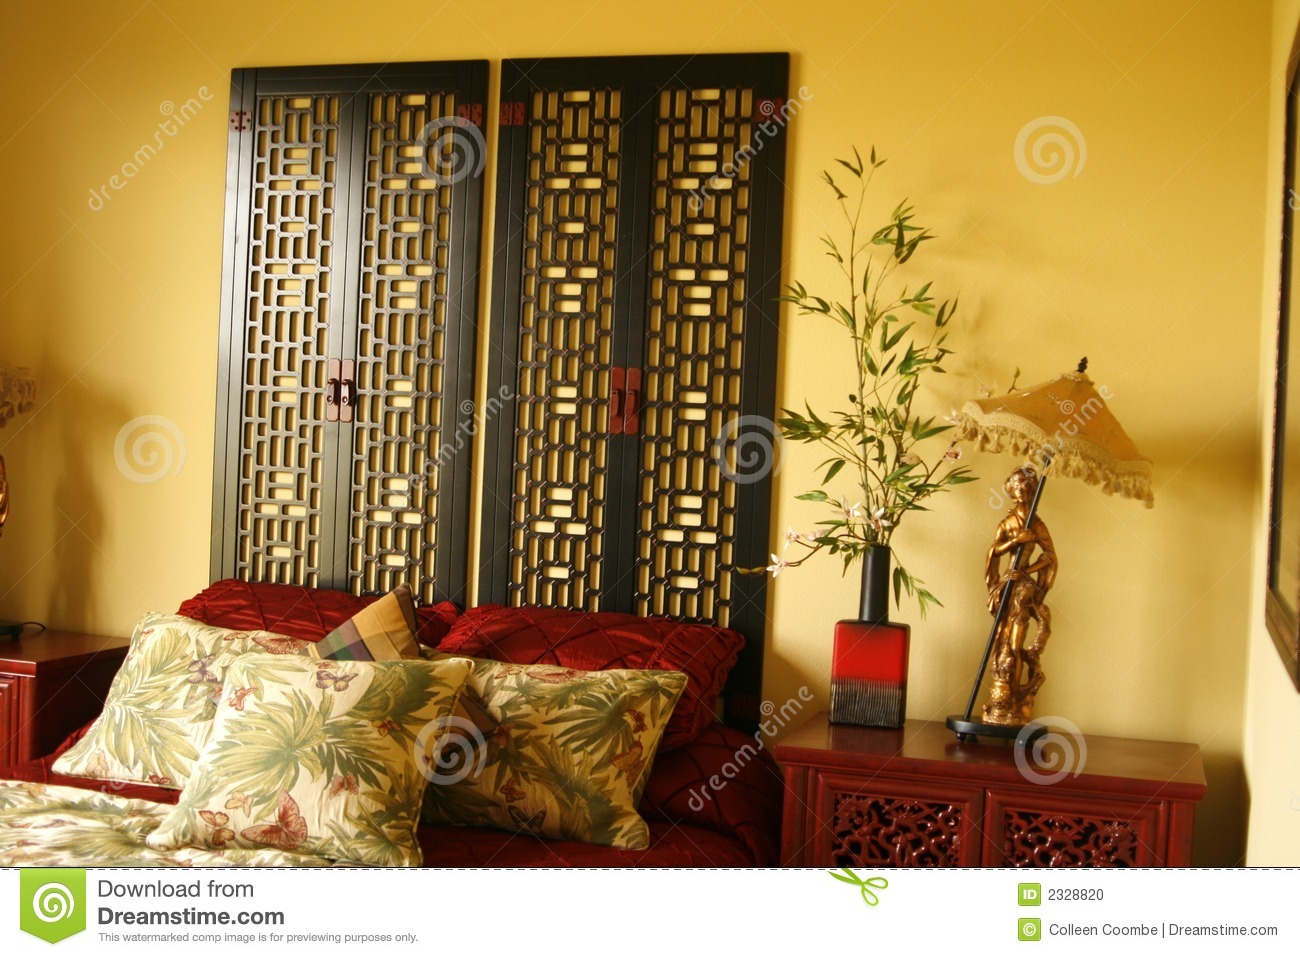 Chinese Decorations For Bedroom Chinese Decor Stock Photo Image 2328820